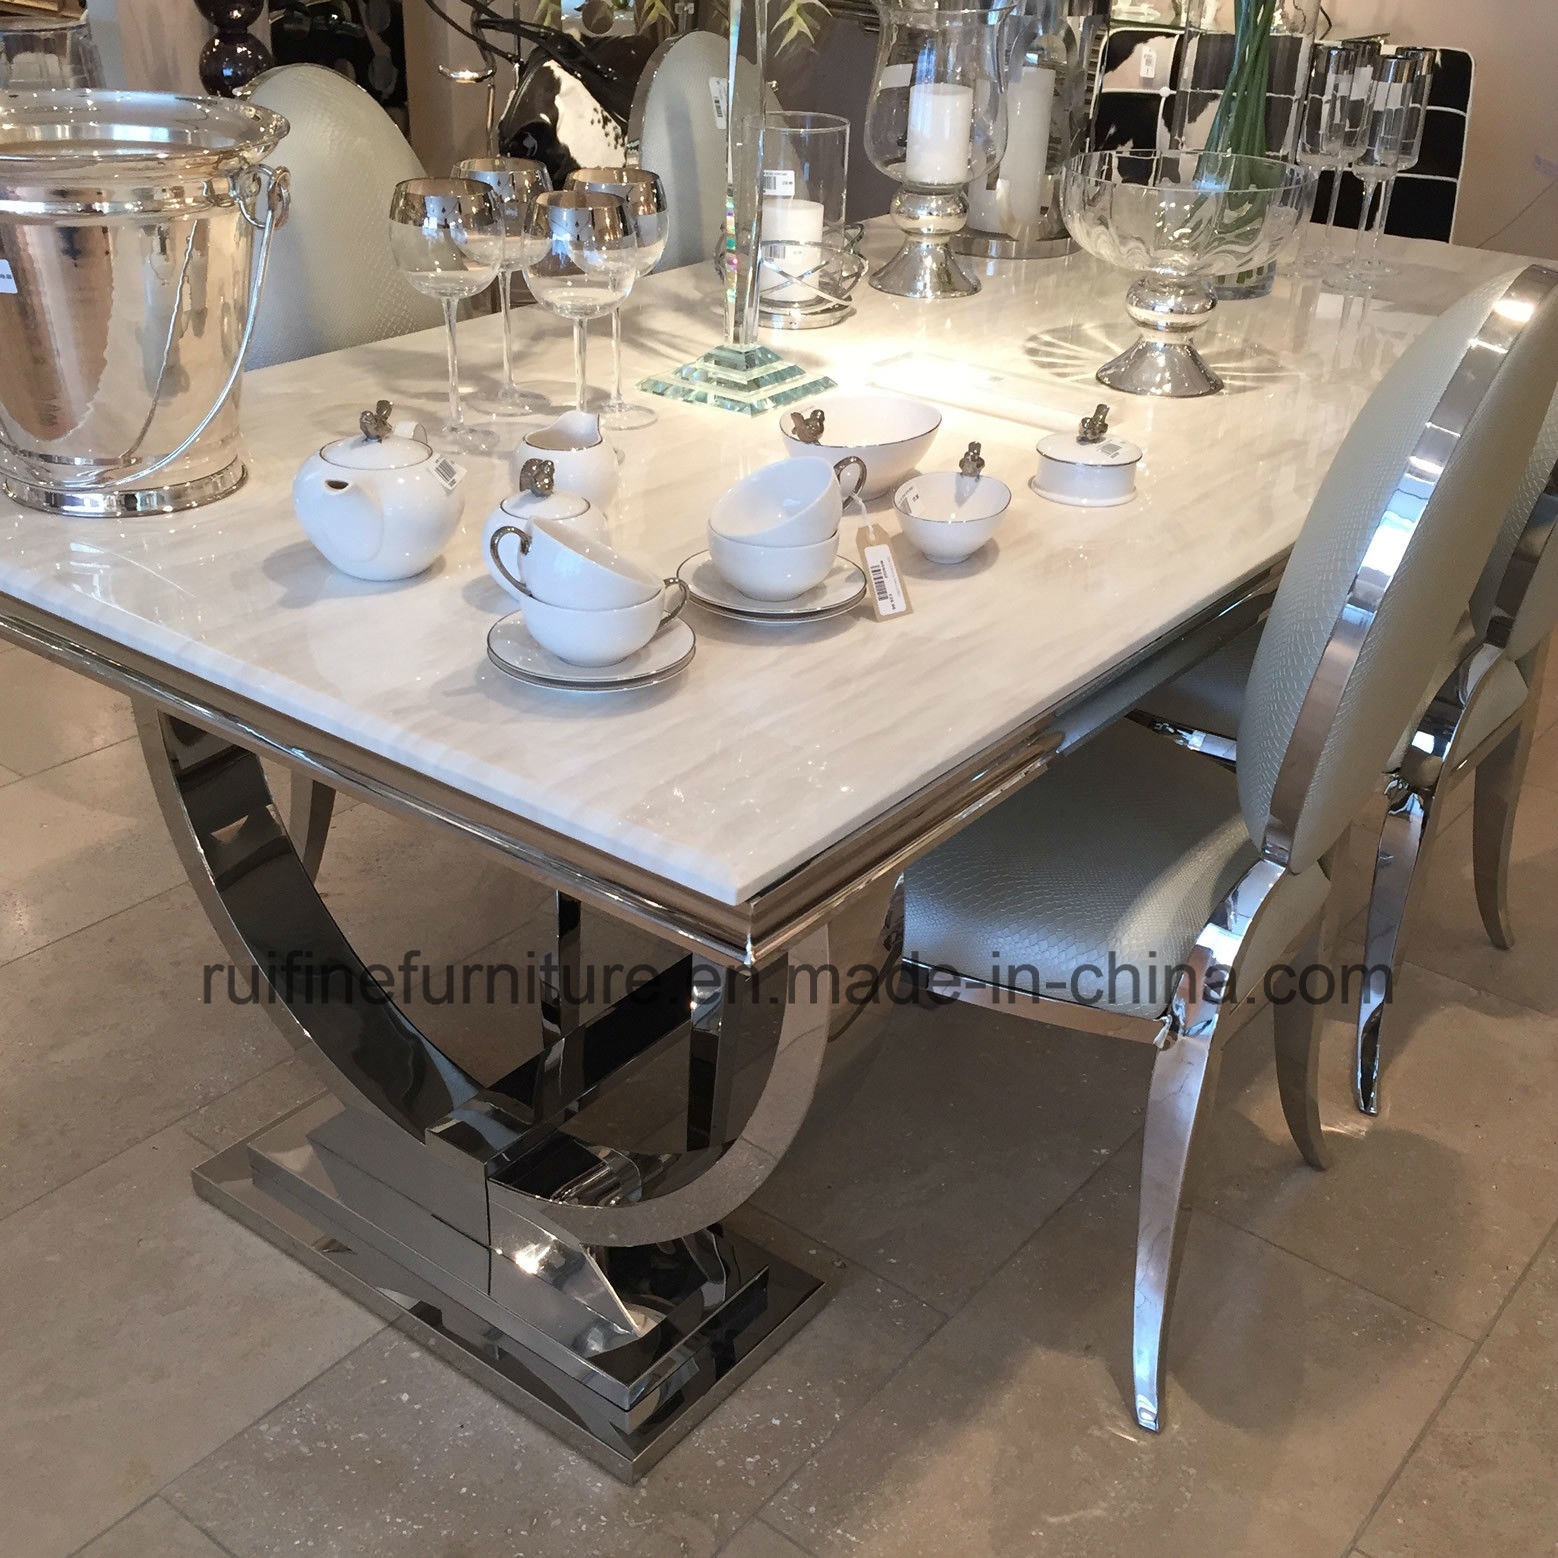 China mirrored dining table set tempered glass hotel furniture china mirrored dining table set tempered glass hotel furniture china dining table dining set watchthetrailerfo